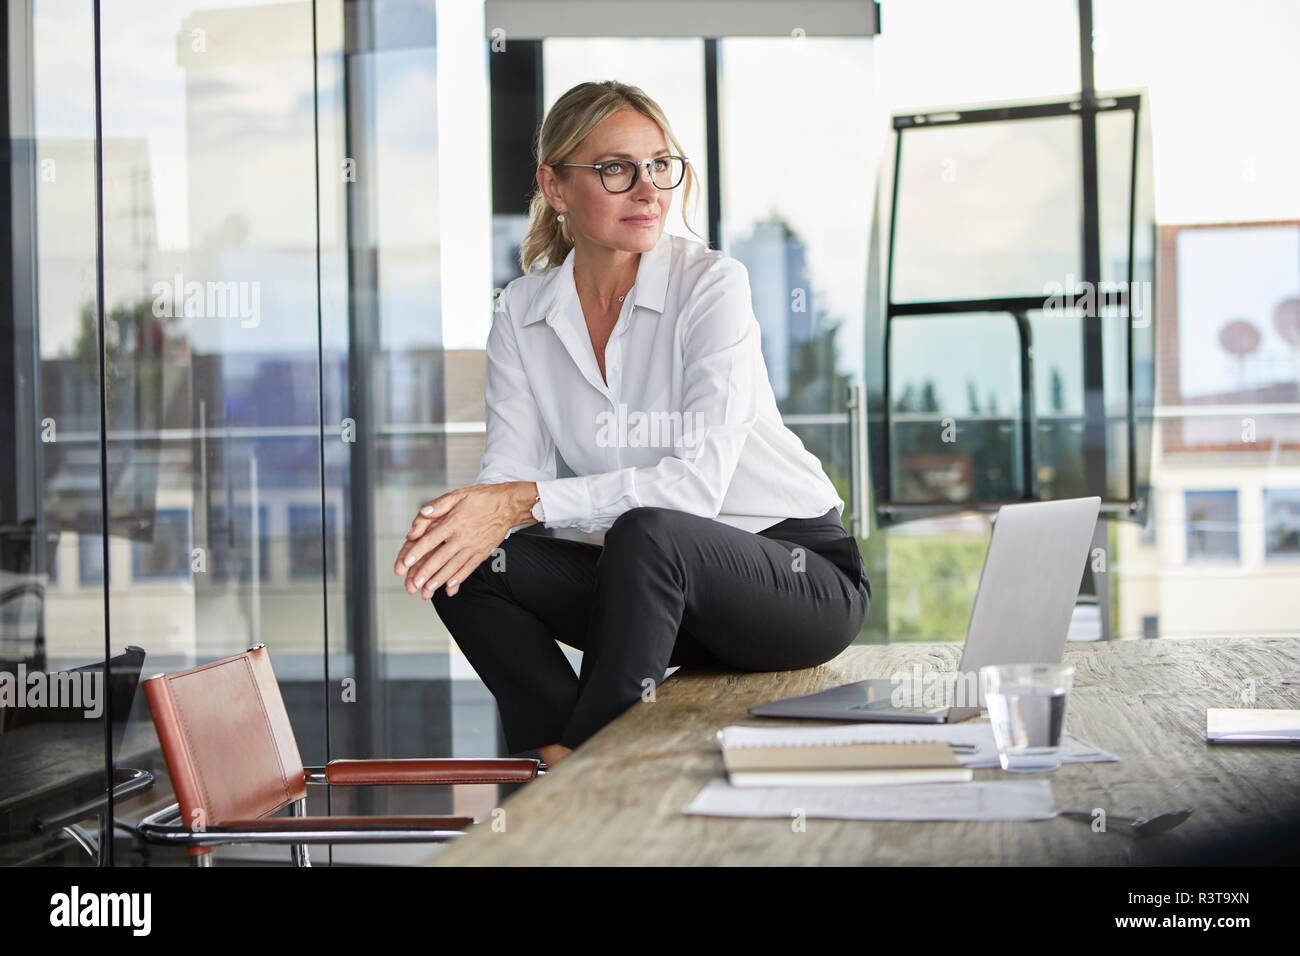 Successful businesswoman sitting on desk, contemplating - Stock Image